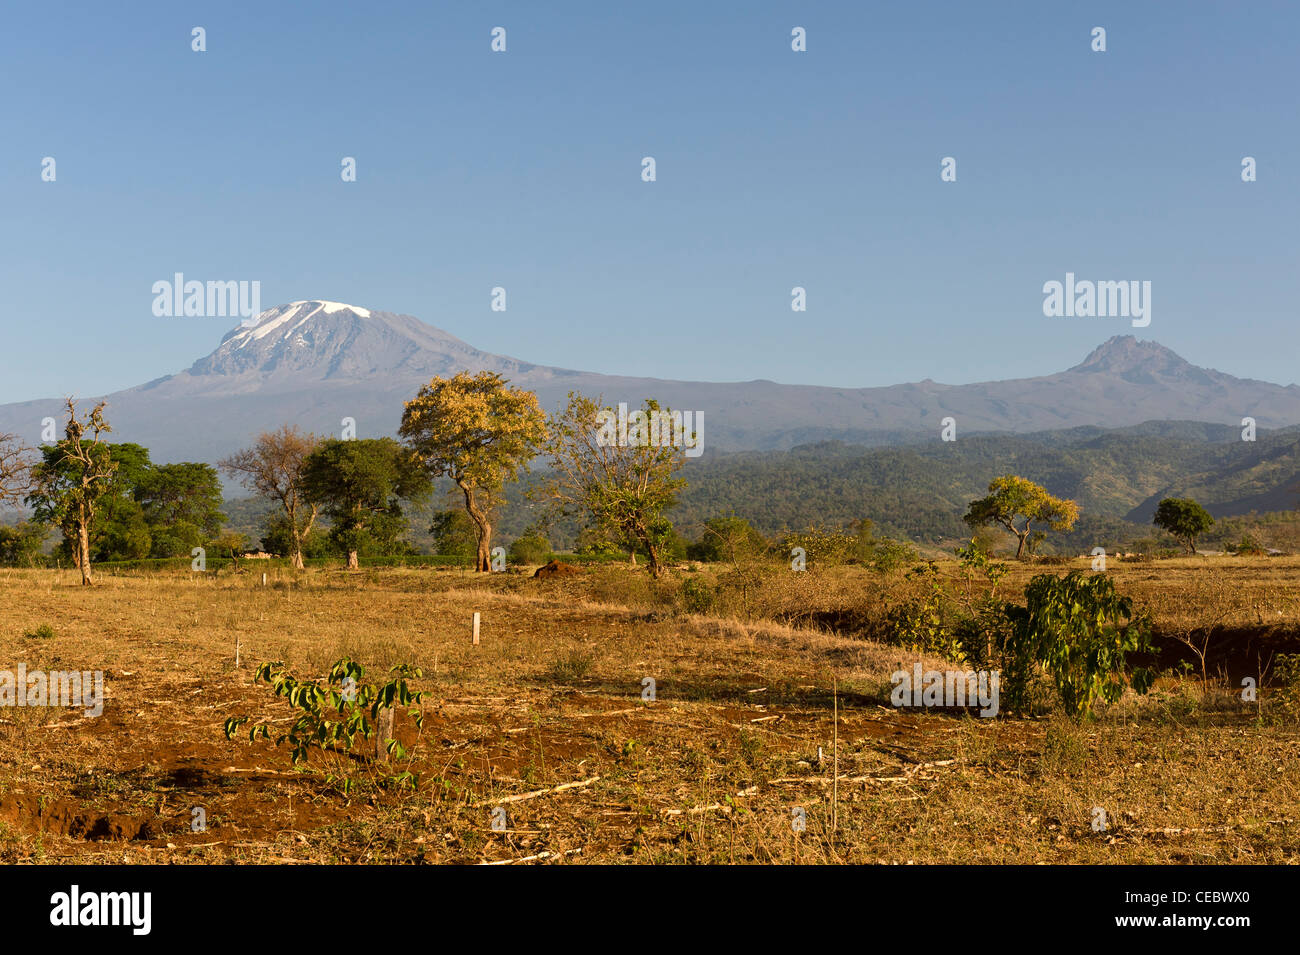 Kilimanjaro and Mawenzi and agricultural land during dry season as seen from Himo in Tanzania - Stock Image